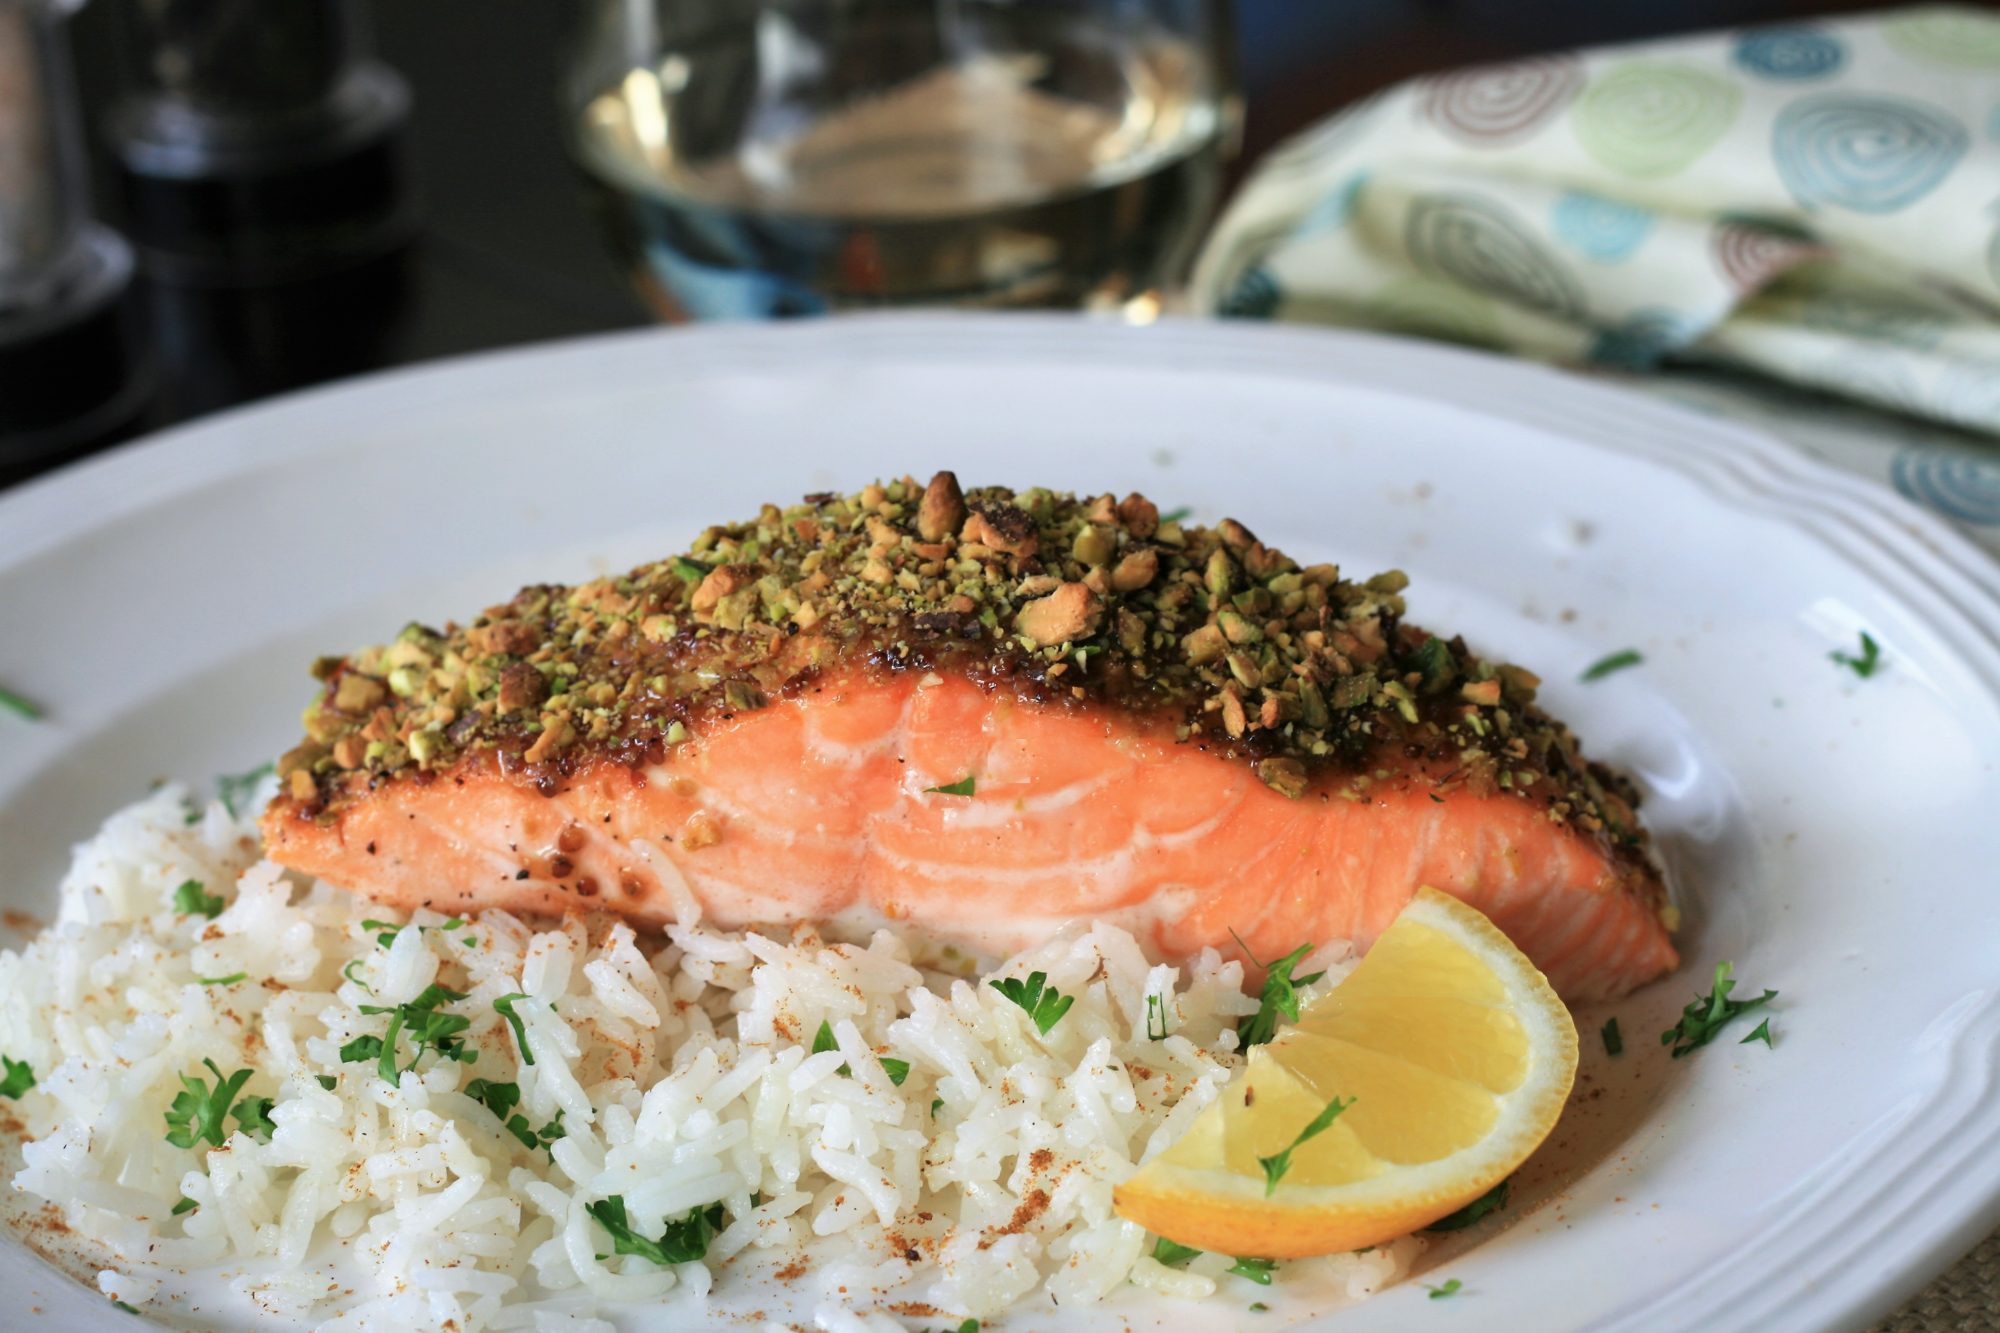 salmon filet with crushed pistachios over rice